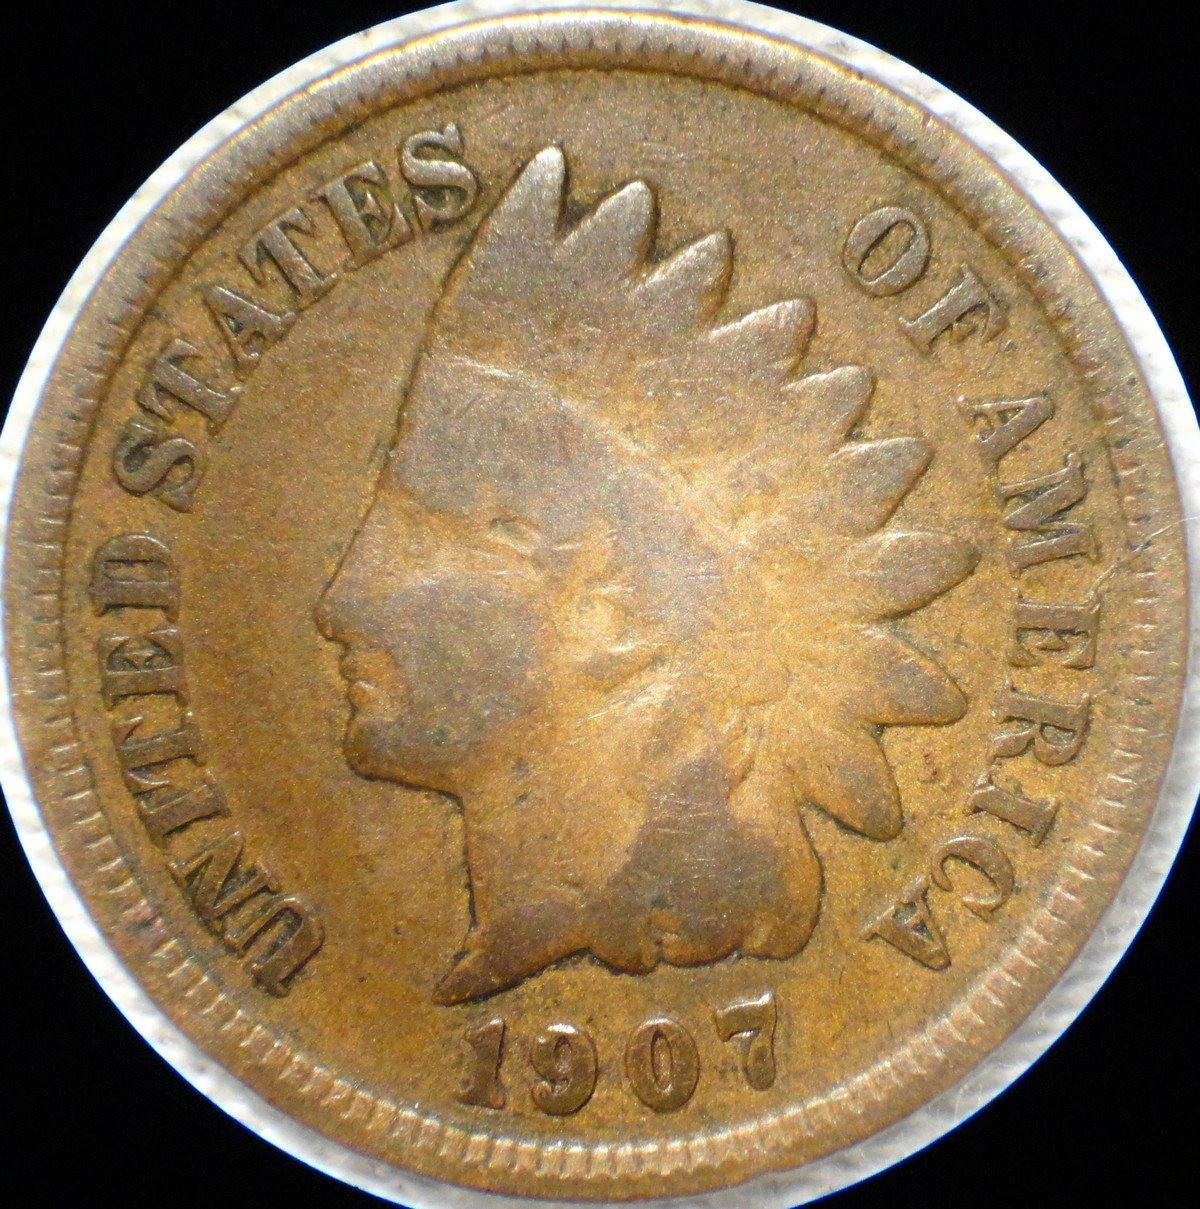 1907 MPD-013, RPD-025 Indian Head Penny